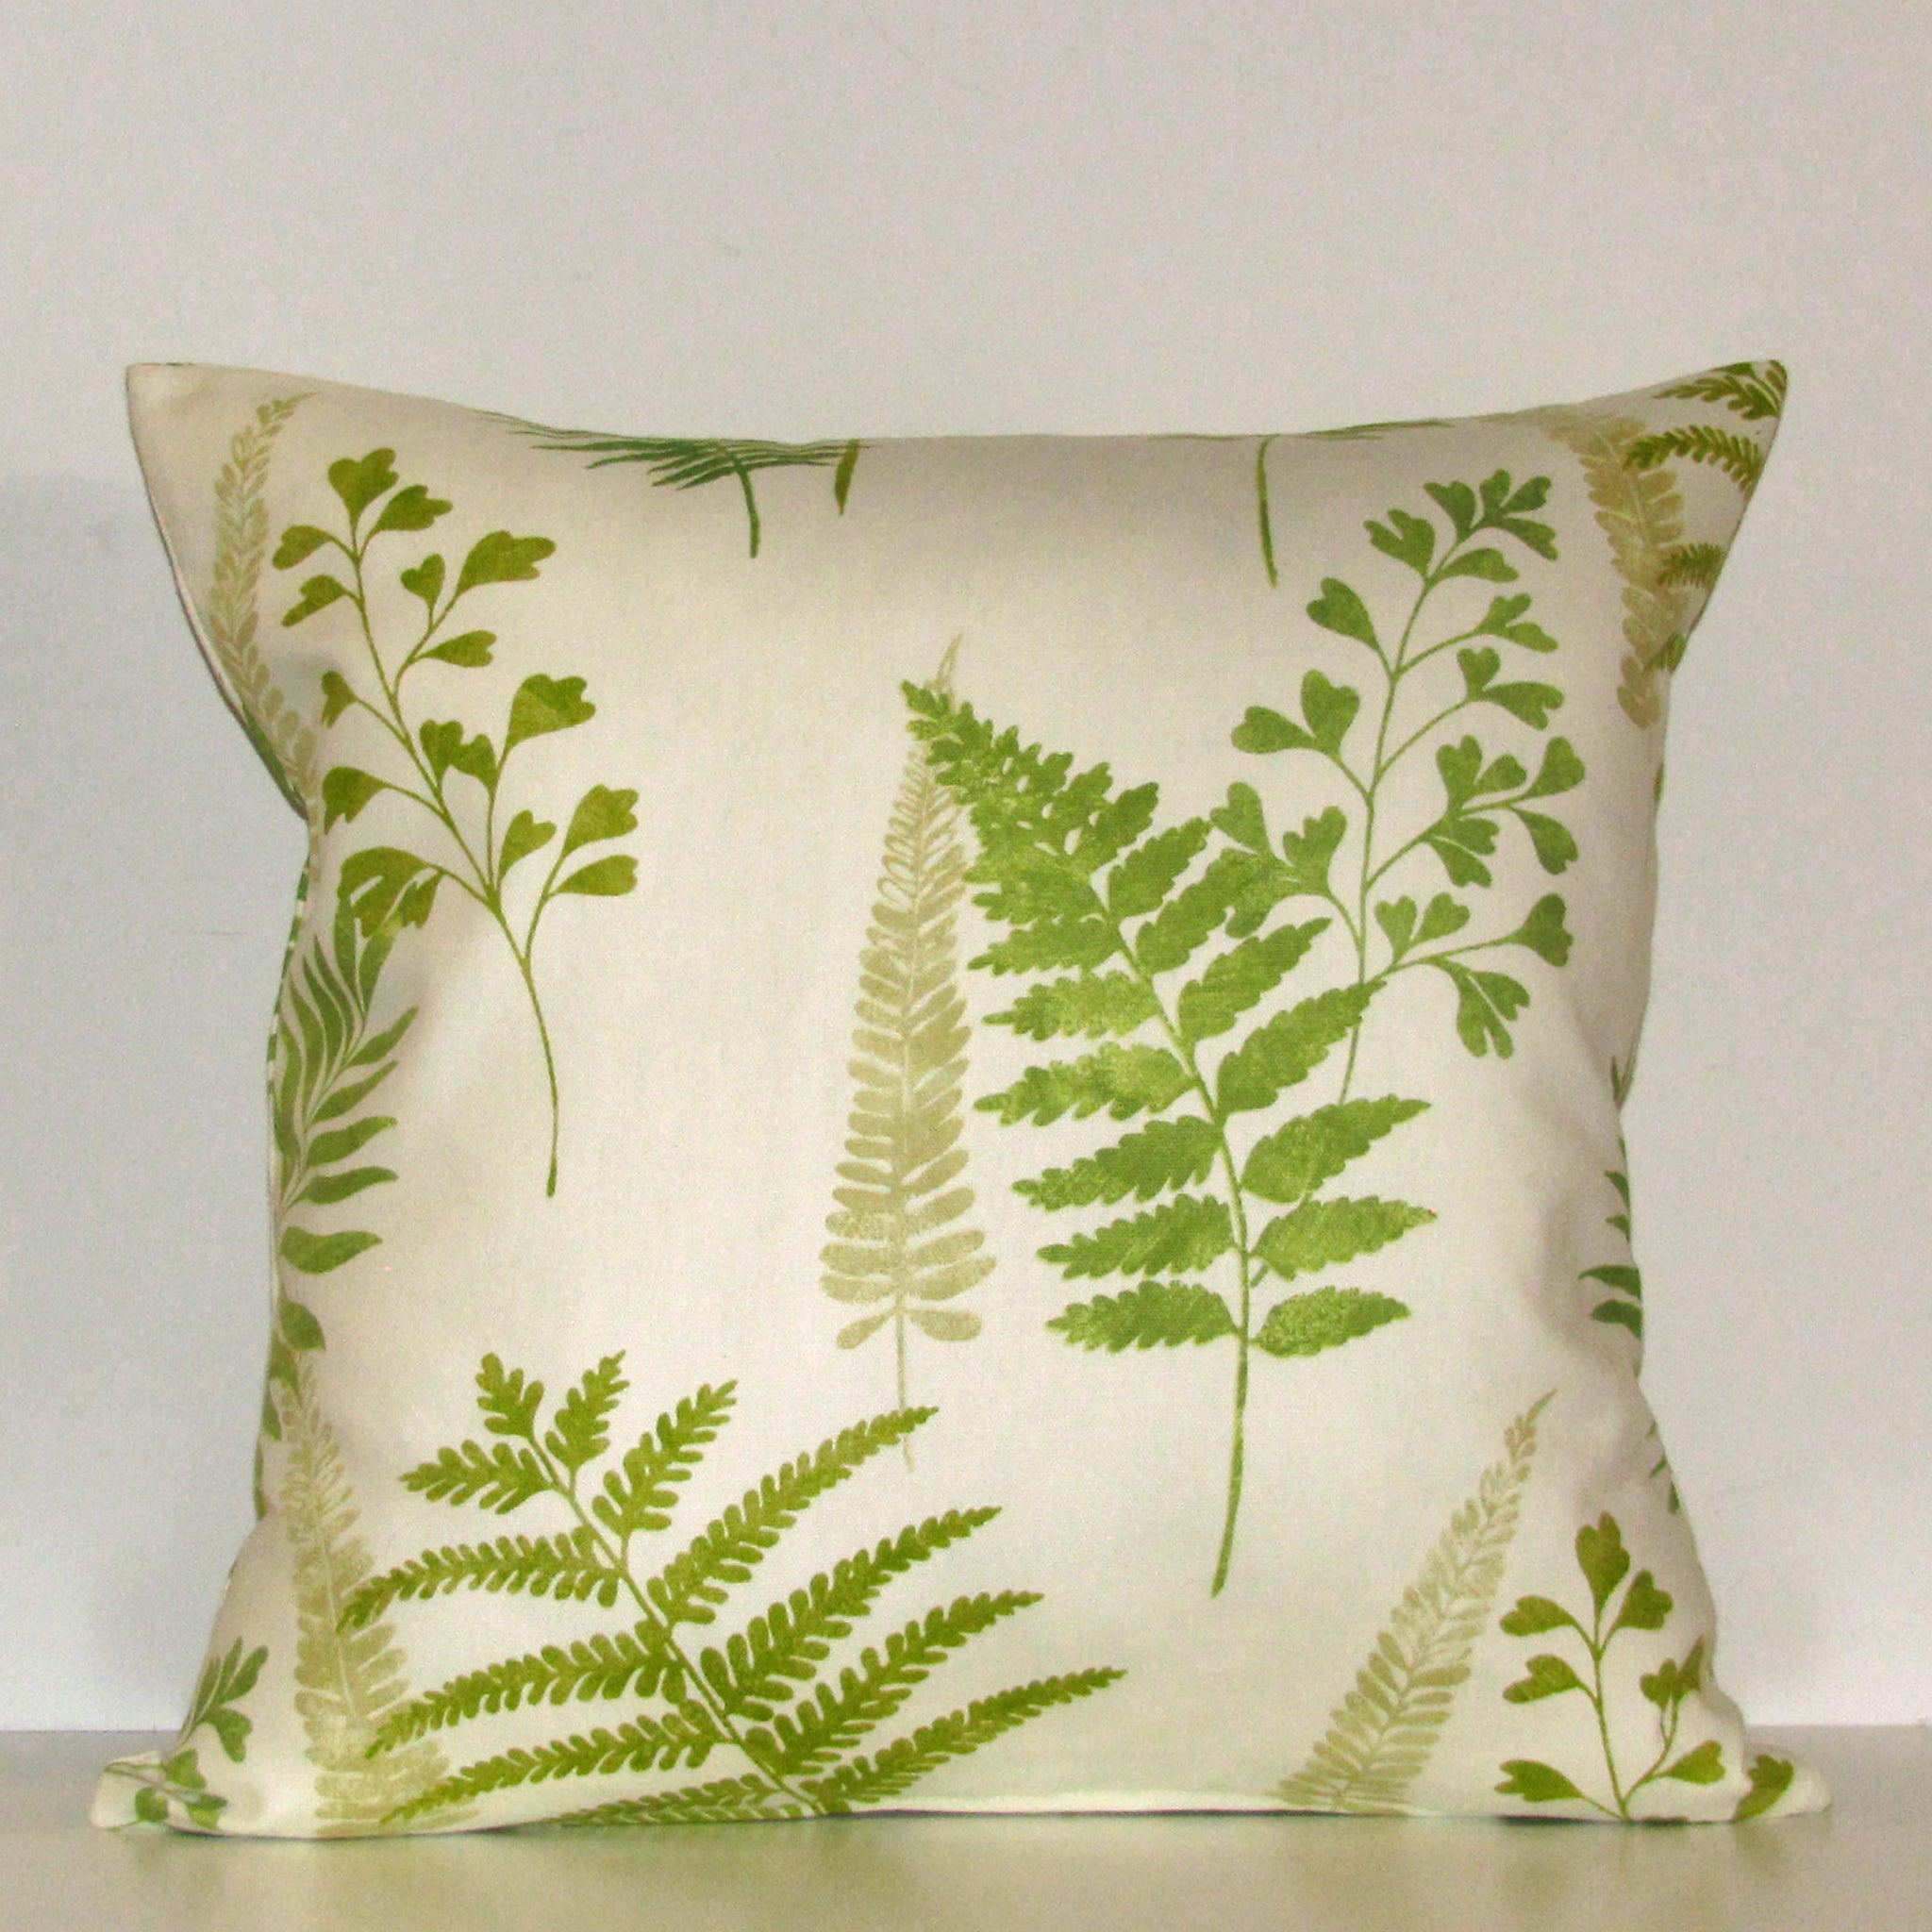 Frond cushion cover